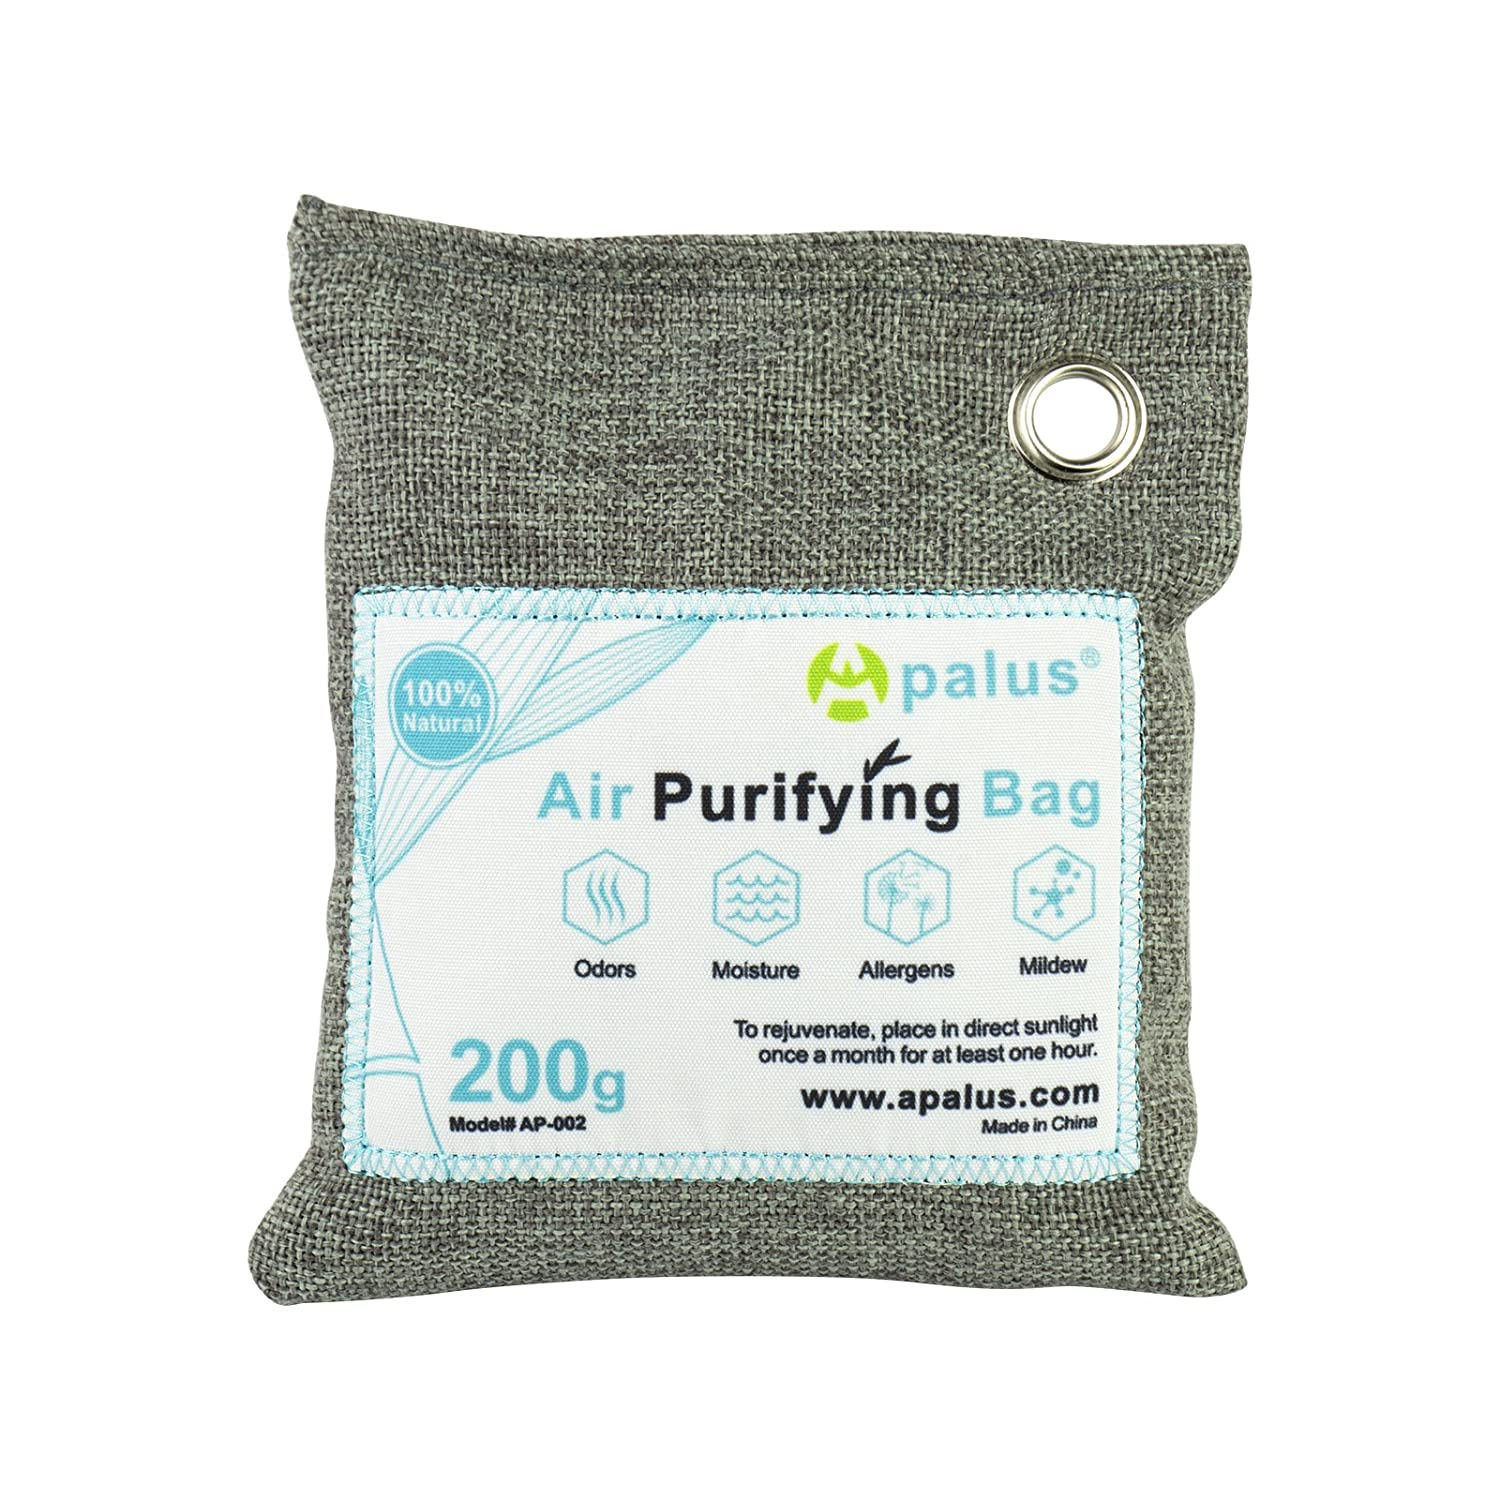 Apalus Air Purifying Bag, Bamboo Activated Charcoal Air Freshener, Car Air Dehumidifier, Deodorizer and Purifier Bags-100% Natural & Chemical Free Moisture, Odor Absorber, 200G AP-002